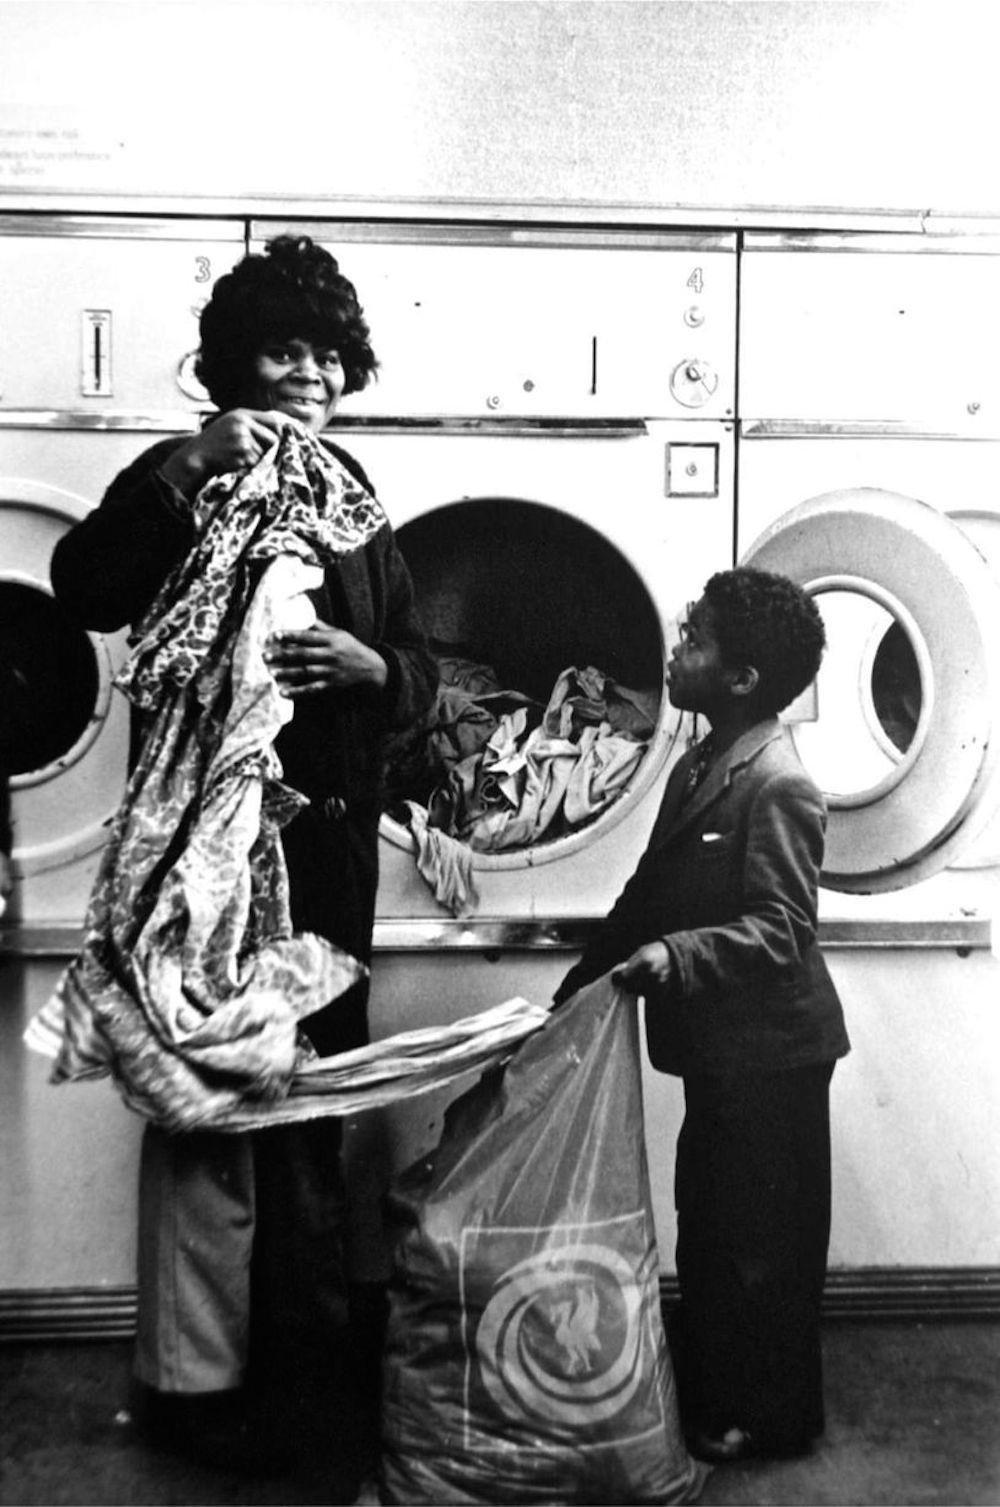 1972 washing, Toxteth, Liverpool